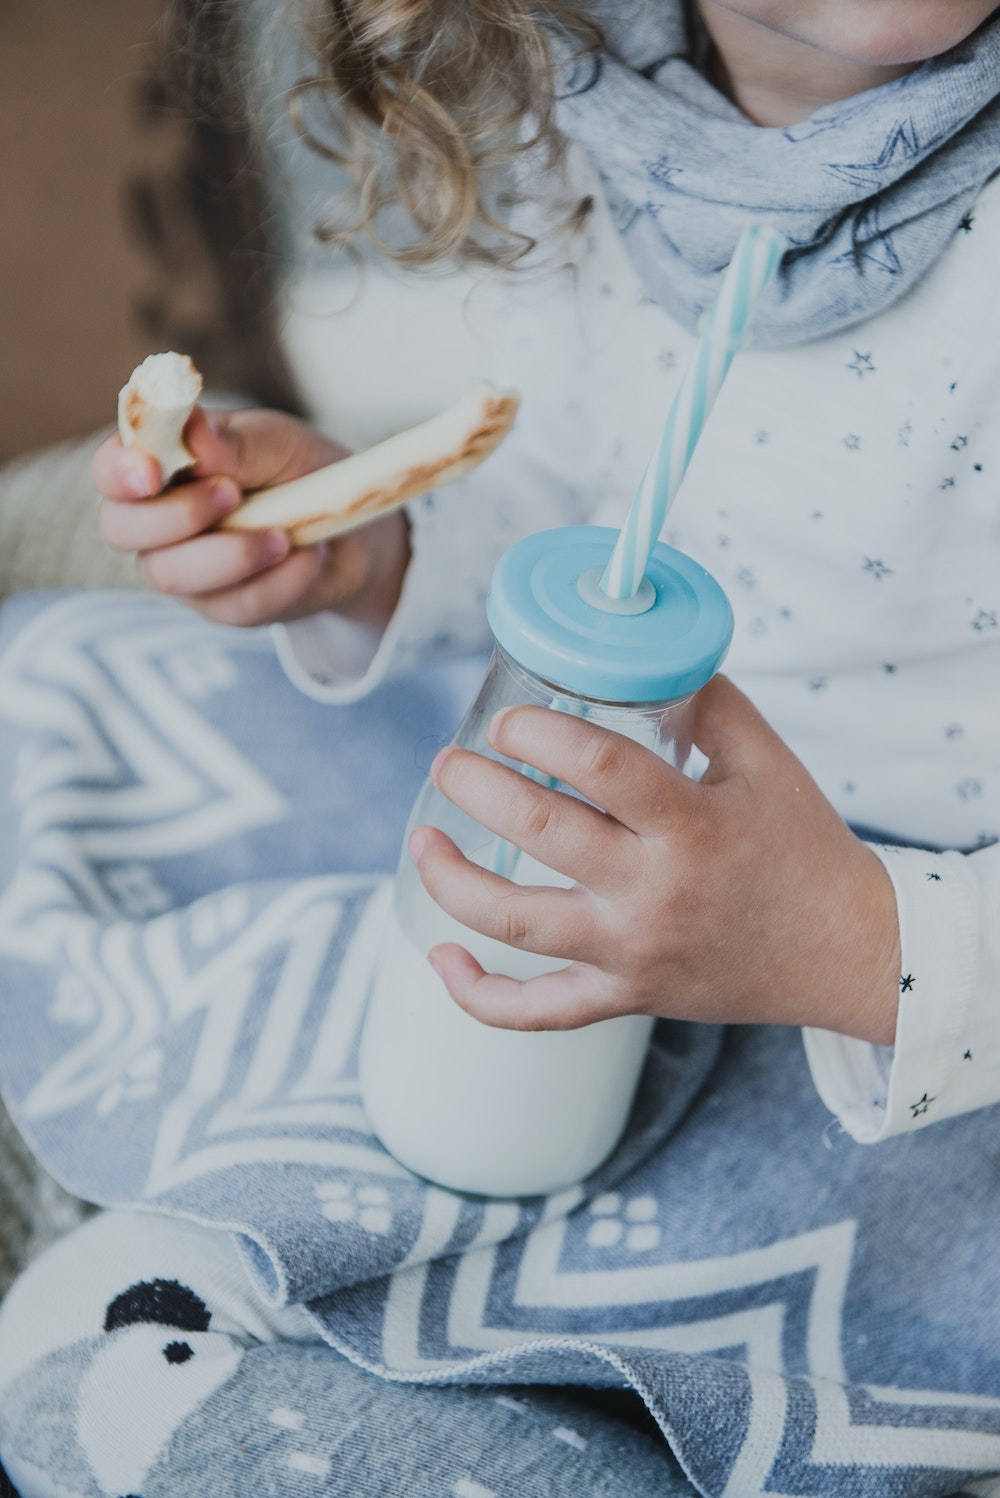 Is Milk Bad for You? The Case for Going Dairy-Free